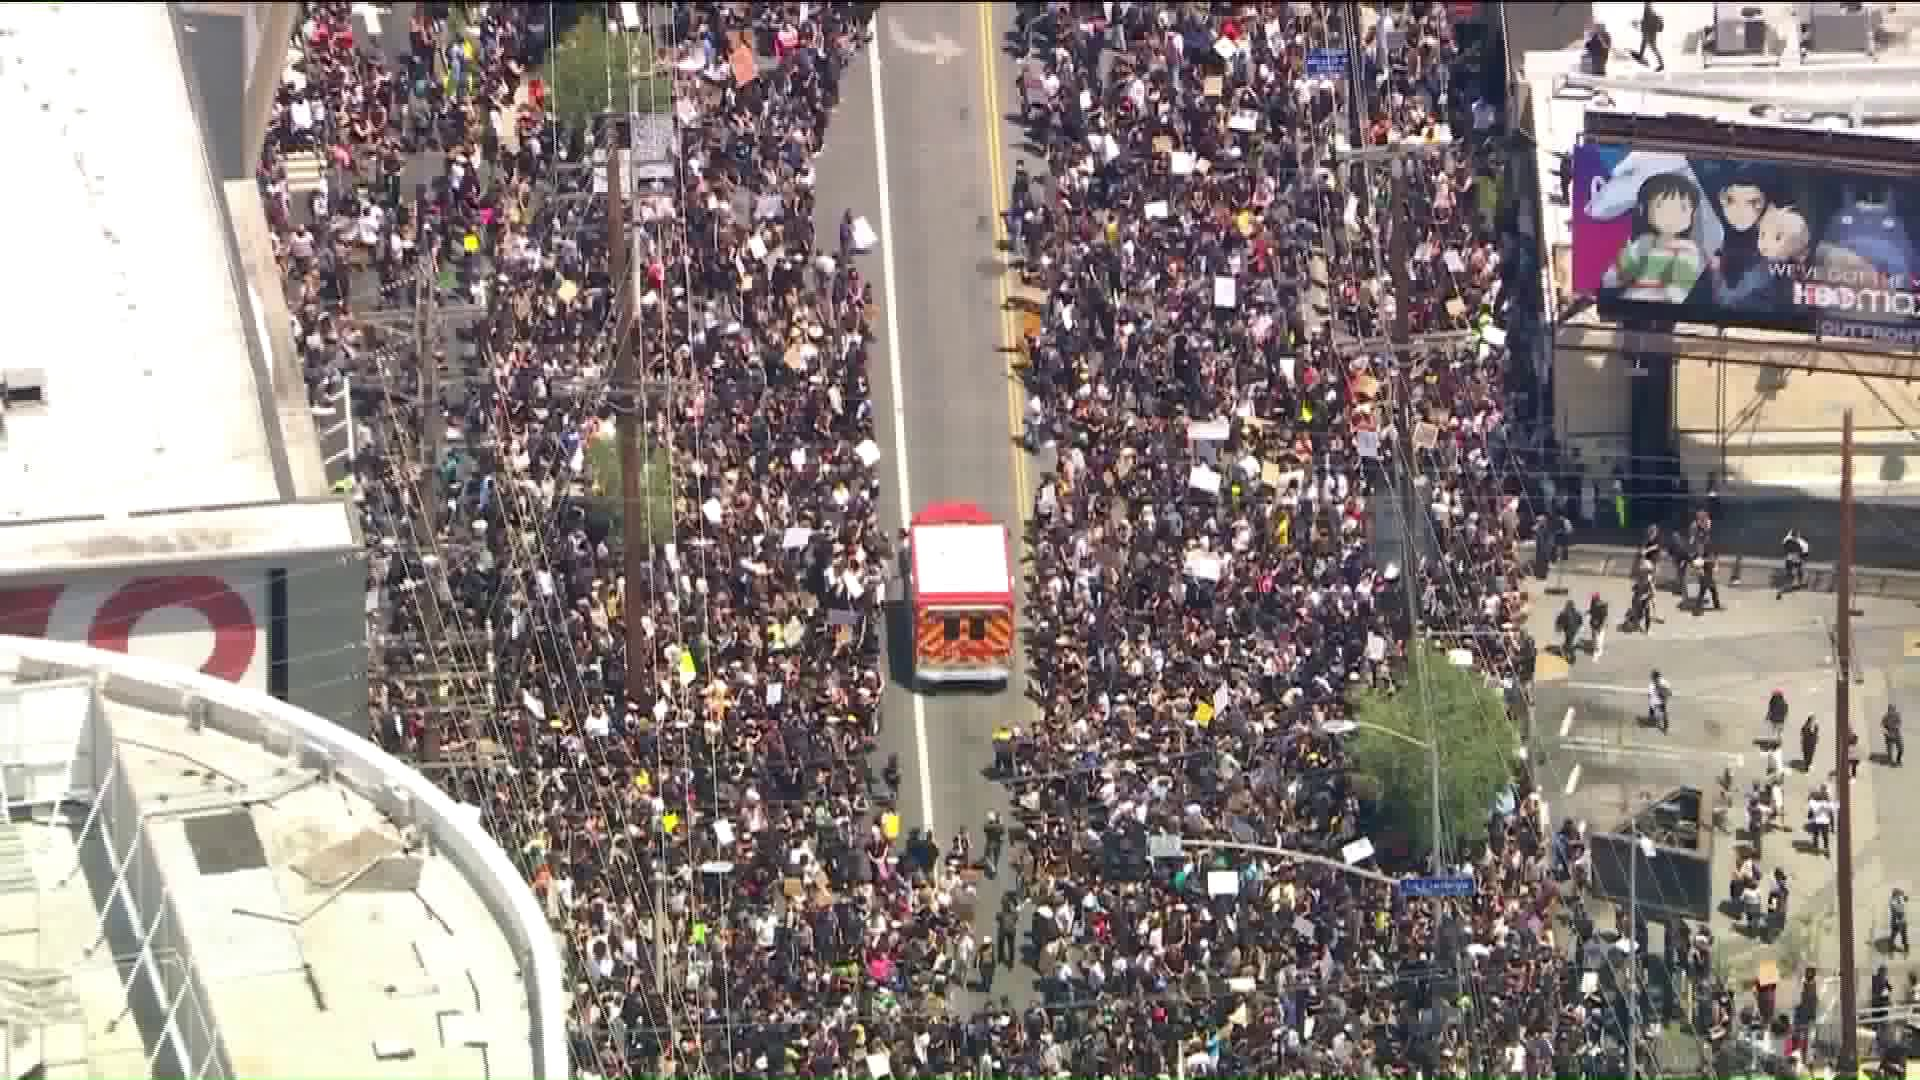 An ambulance vehicle is surrounded by dense crowds of protesters as it drives down a street in L.A.'s Fairfax District on May 30, 2020. Thousands in Los Angeles have joined nationwide protests over the death of George Floyd in Minneapolis. (KTLA)